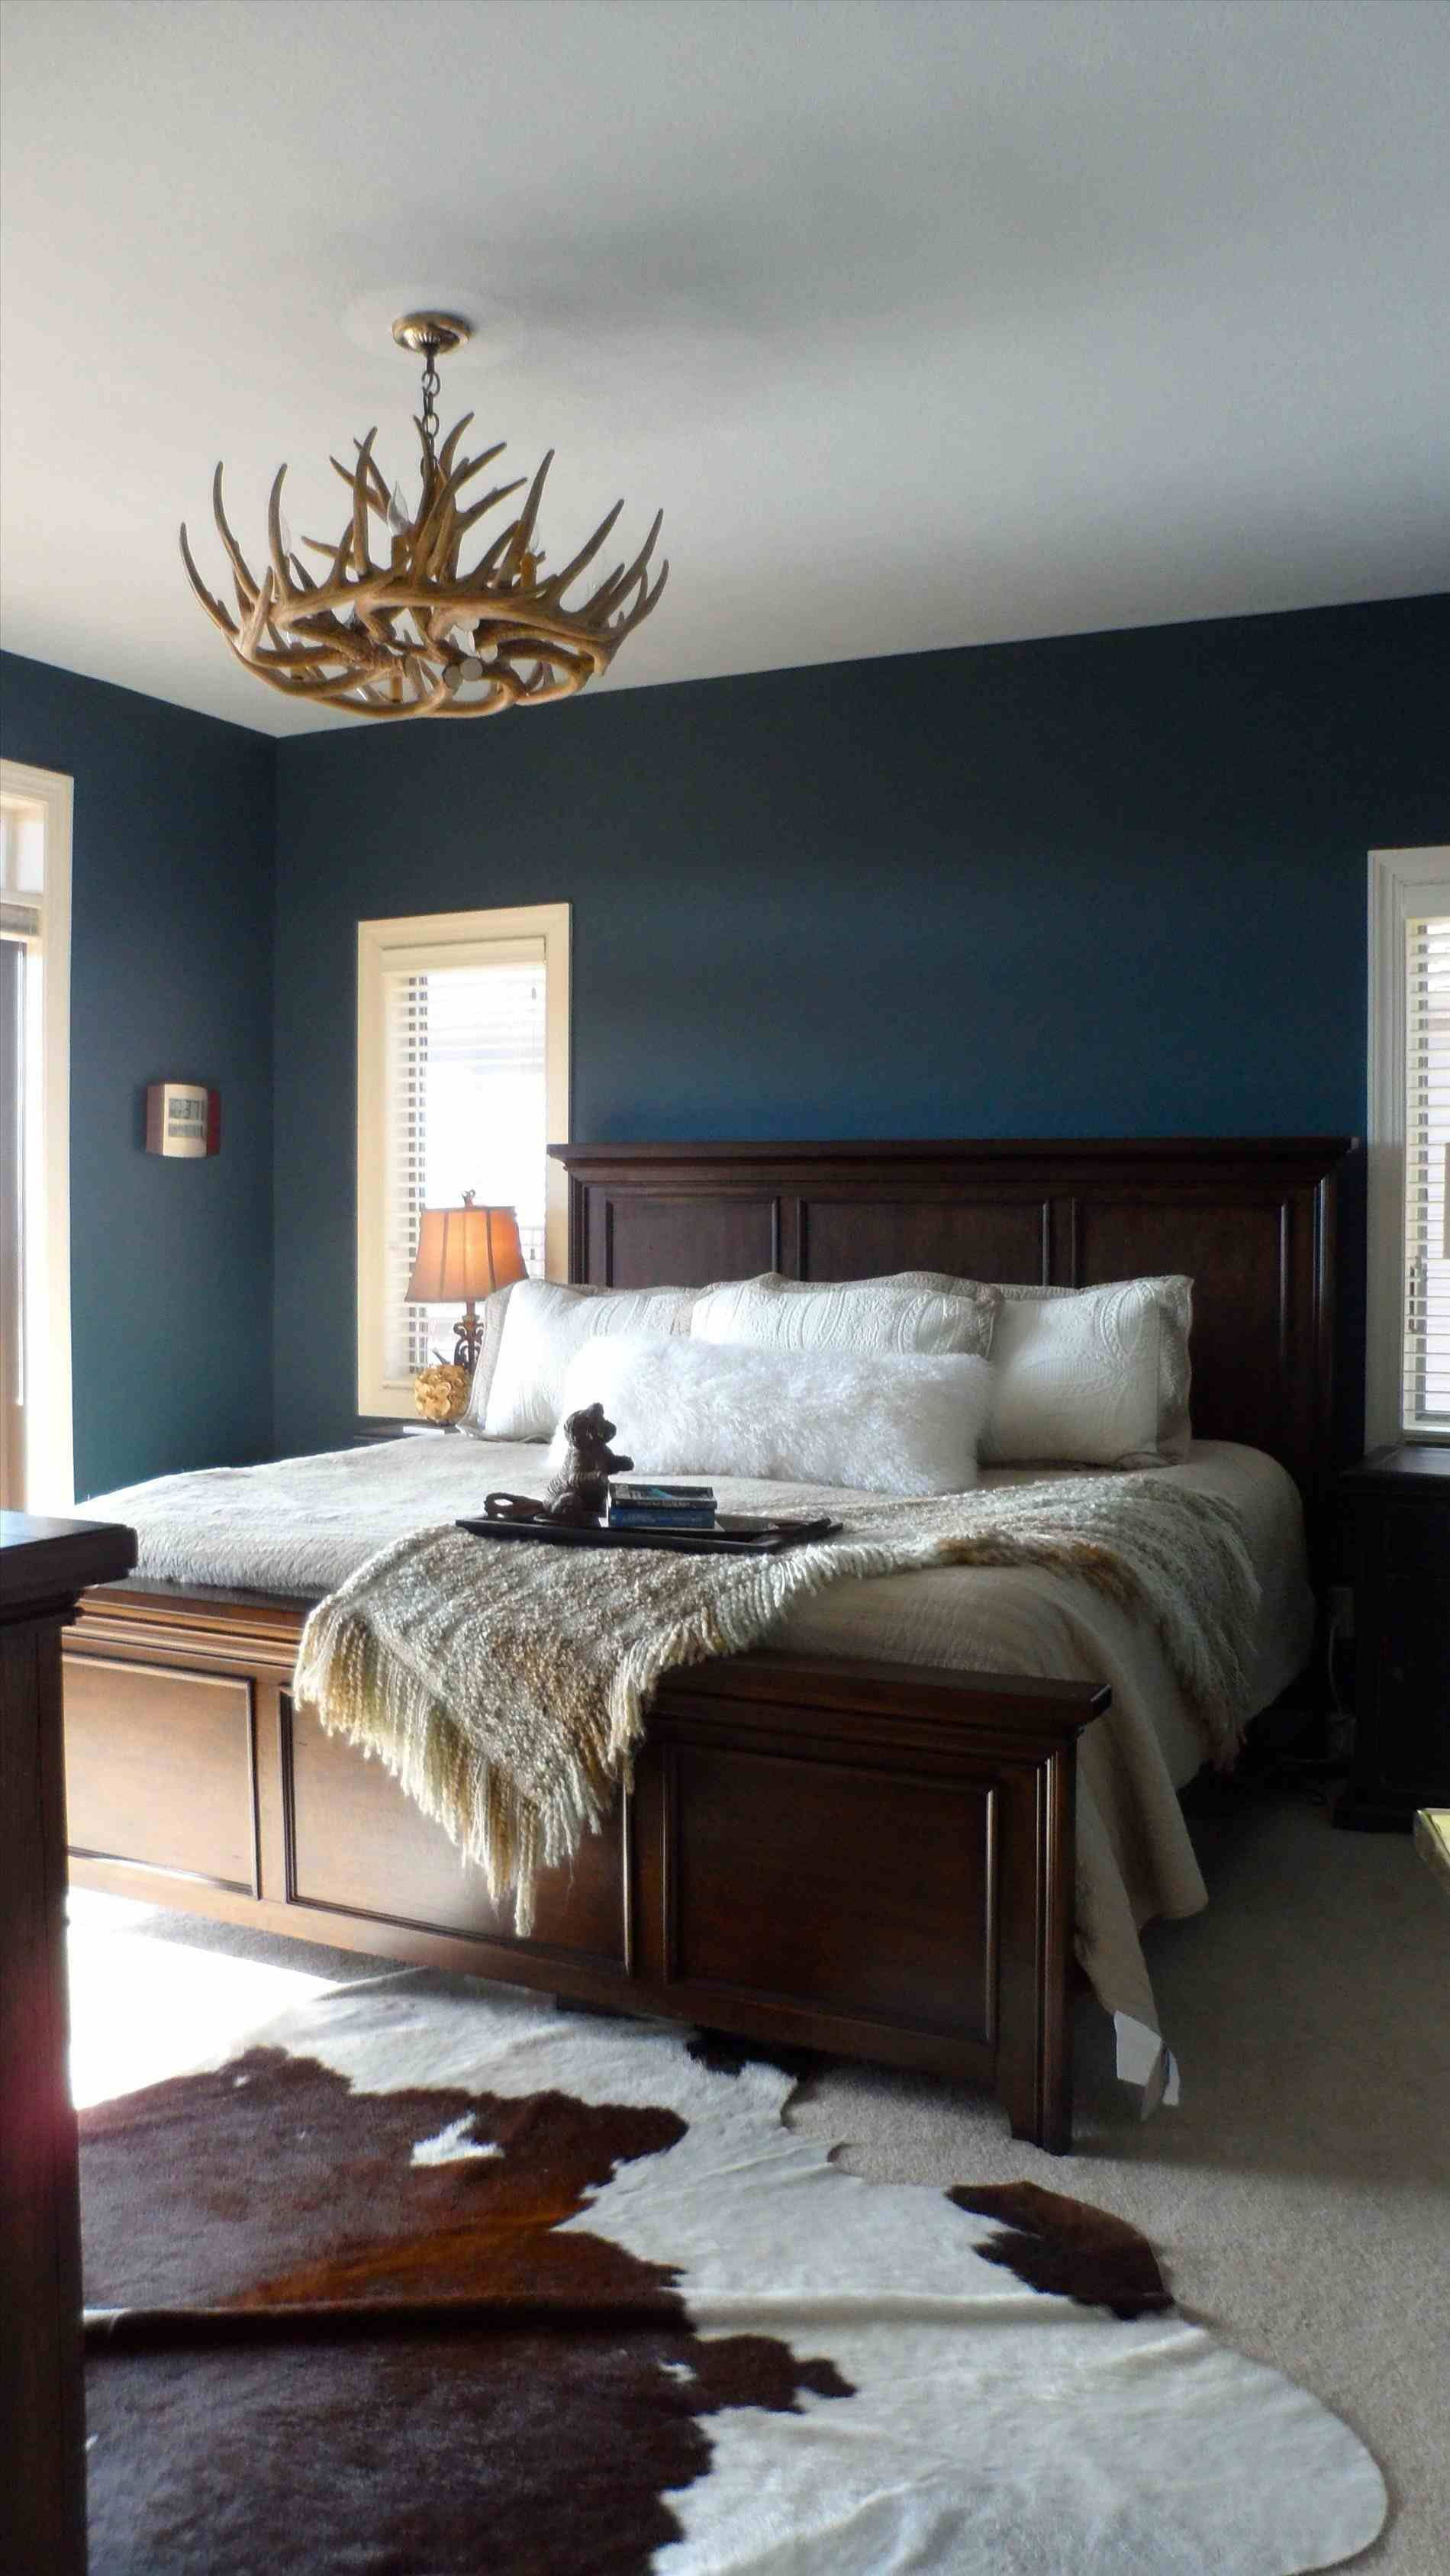 Farmhouse Bedroom Ideas 19 Tips And Tricks Cool Bedroom